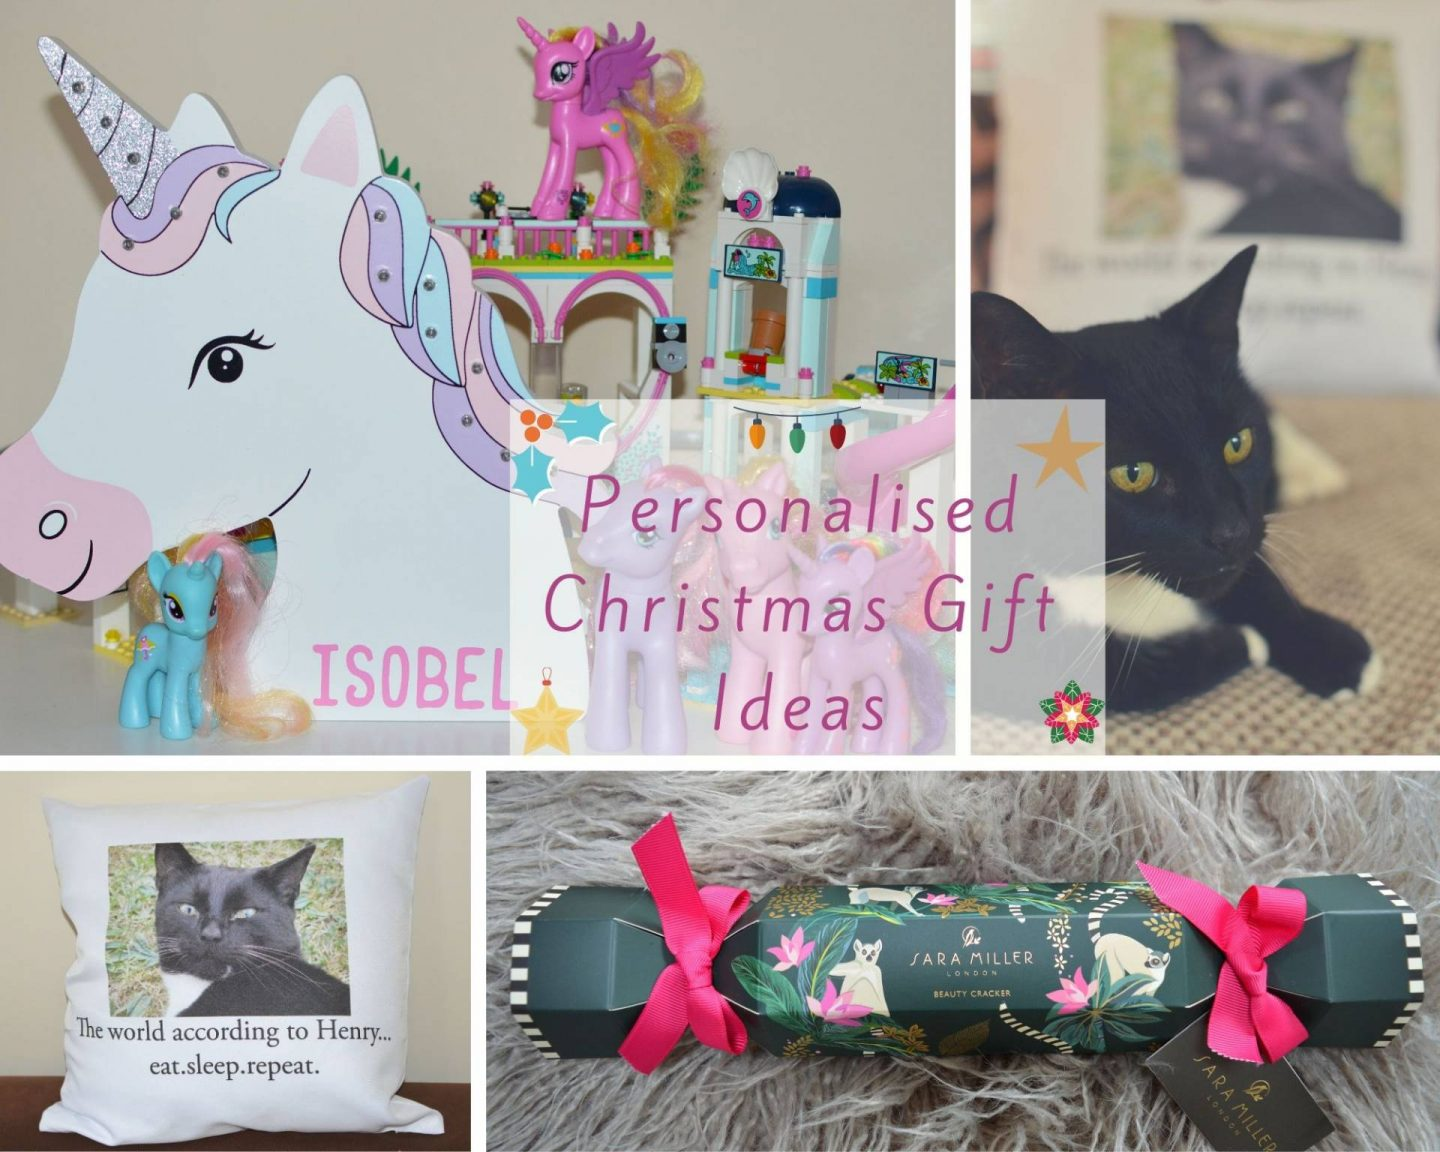 Personalised Christmas gift ideas collage